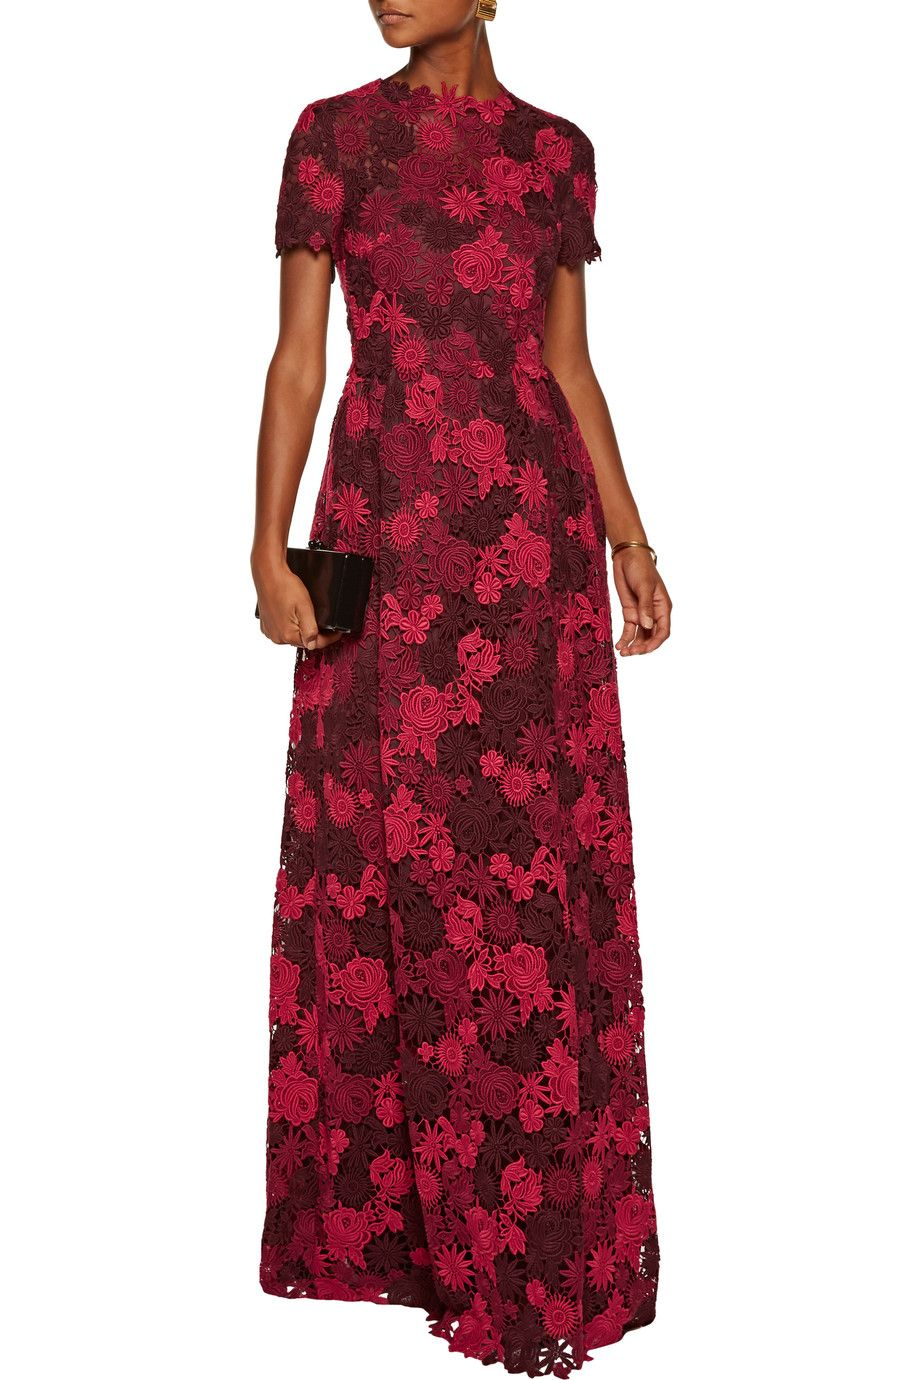 Cotton-blend guipure lace gown | Valentino | UK | THE OUTNET ...